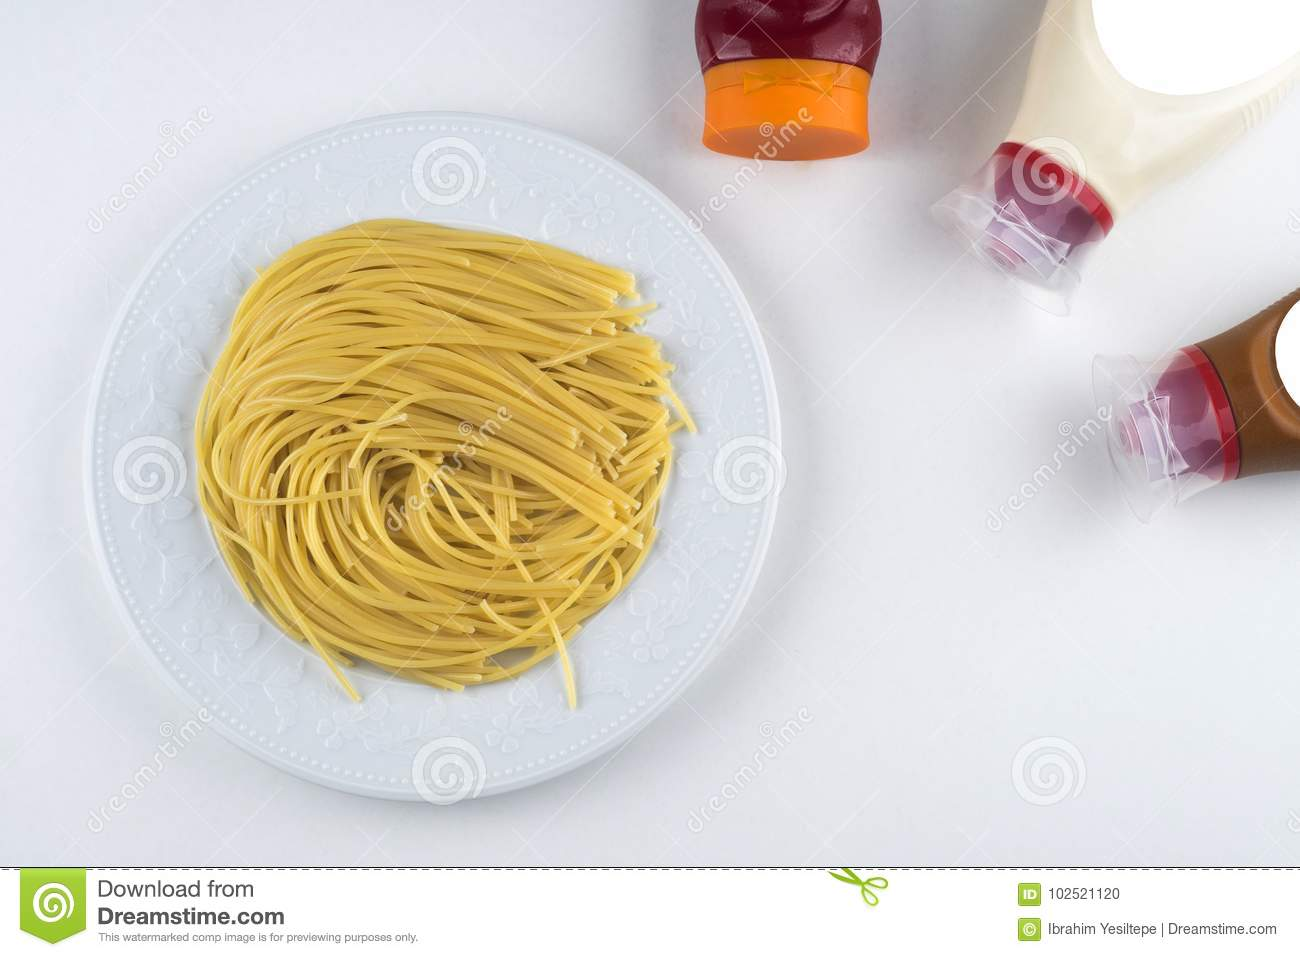 Pasta Fettuccine Bolognese with tomato sauce in white bowl. Top view